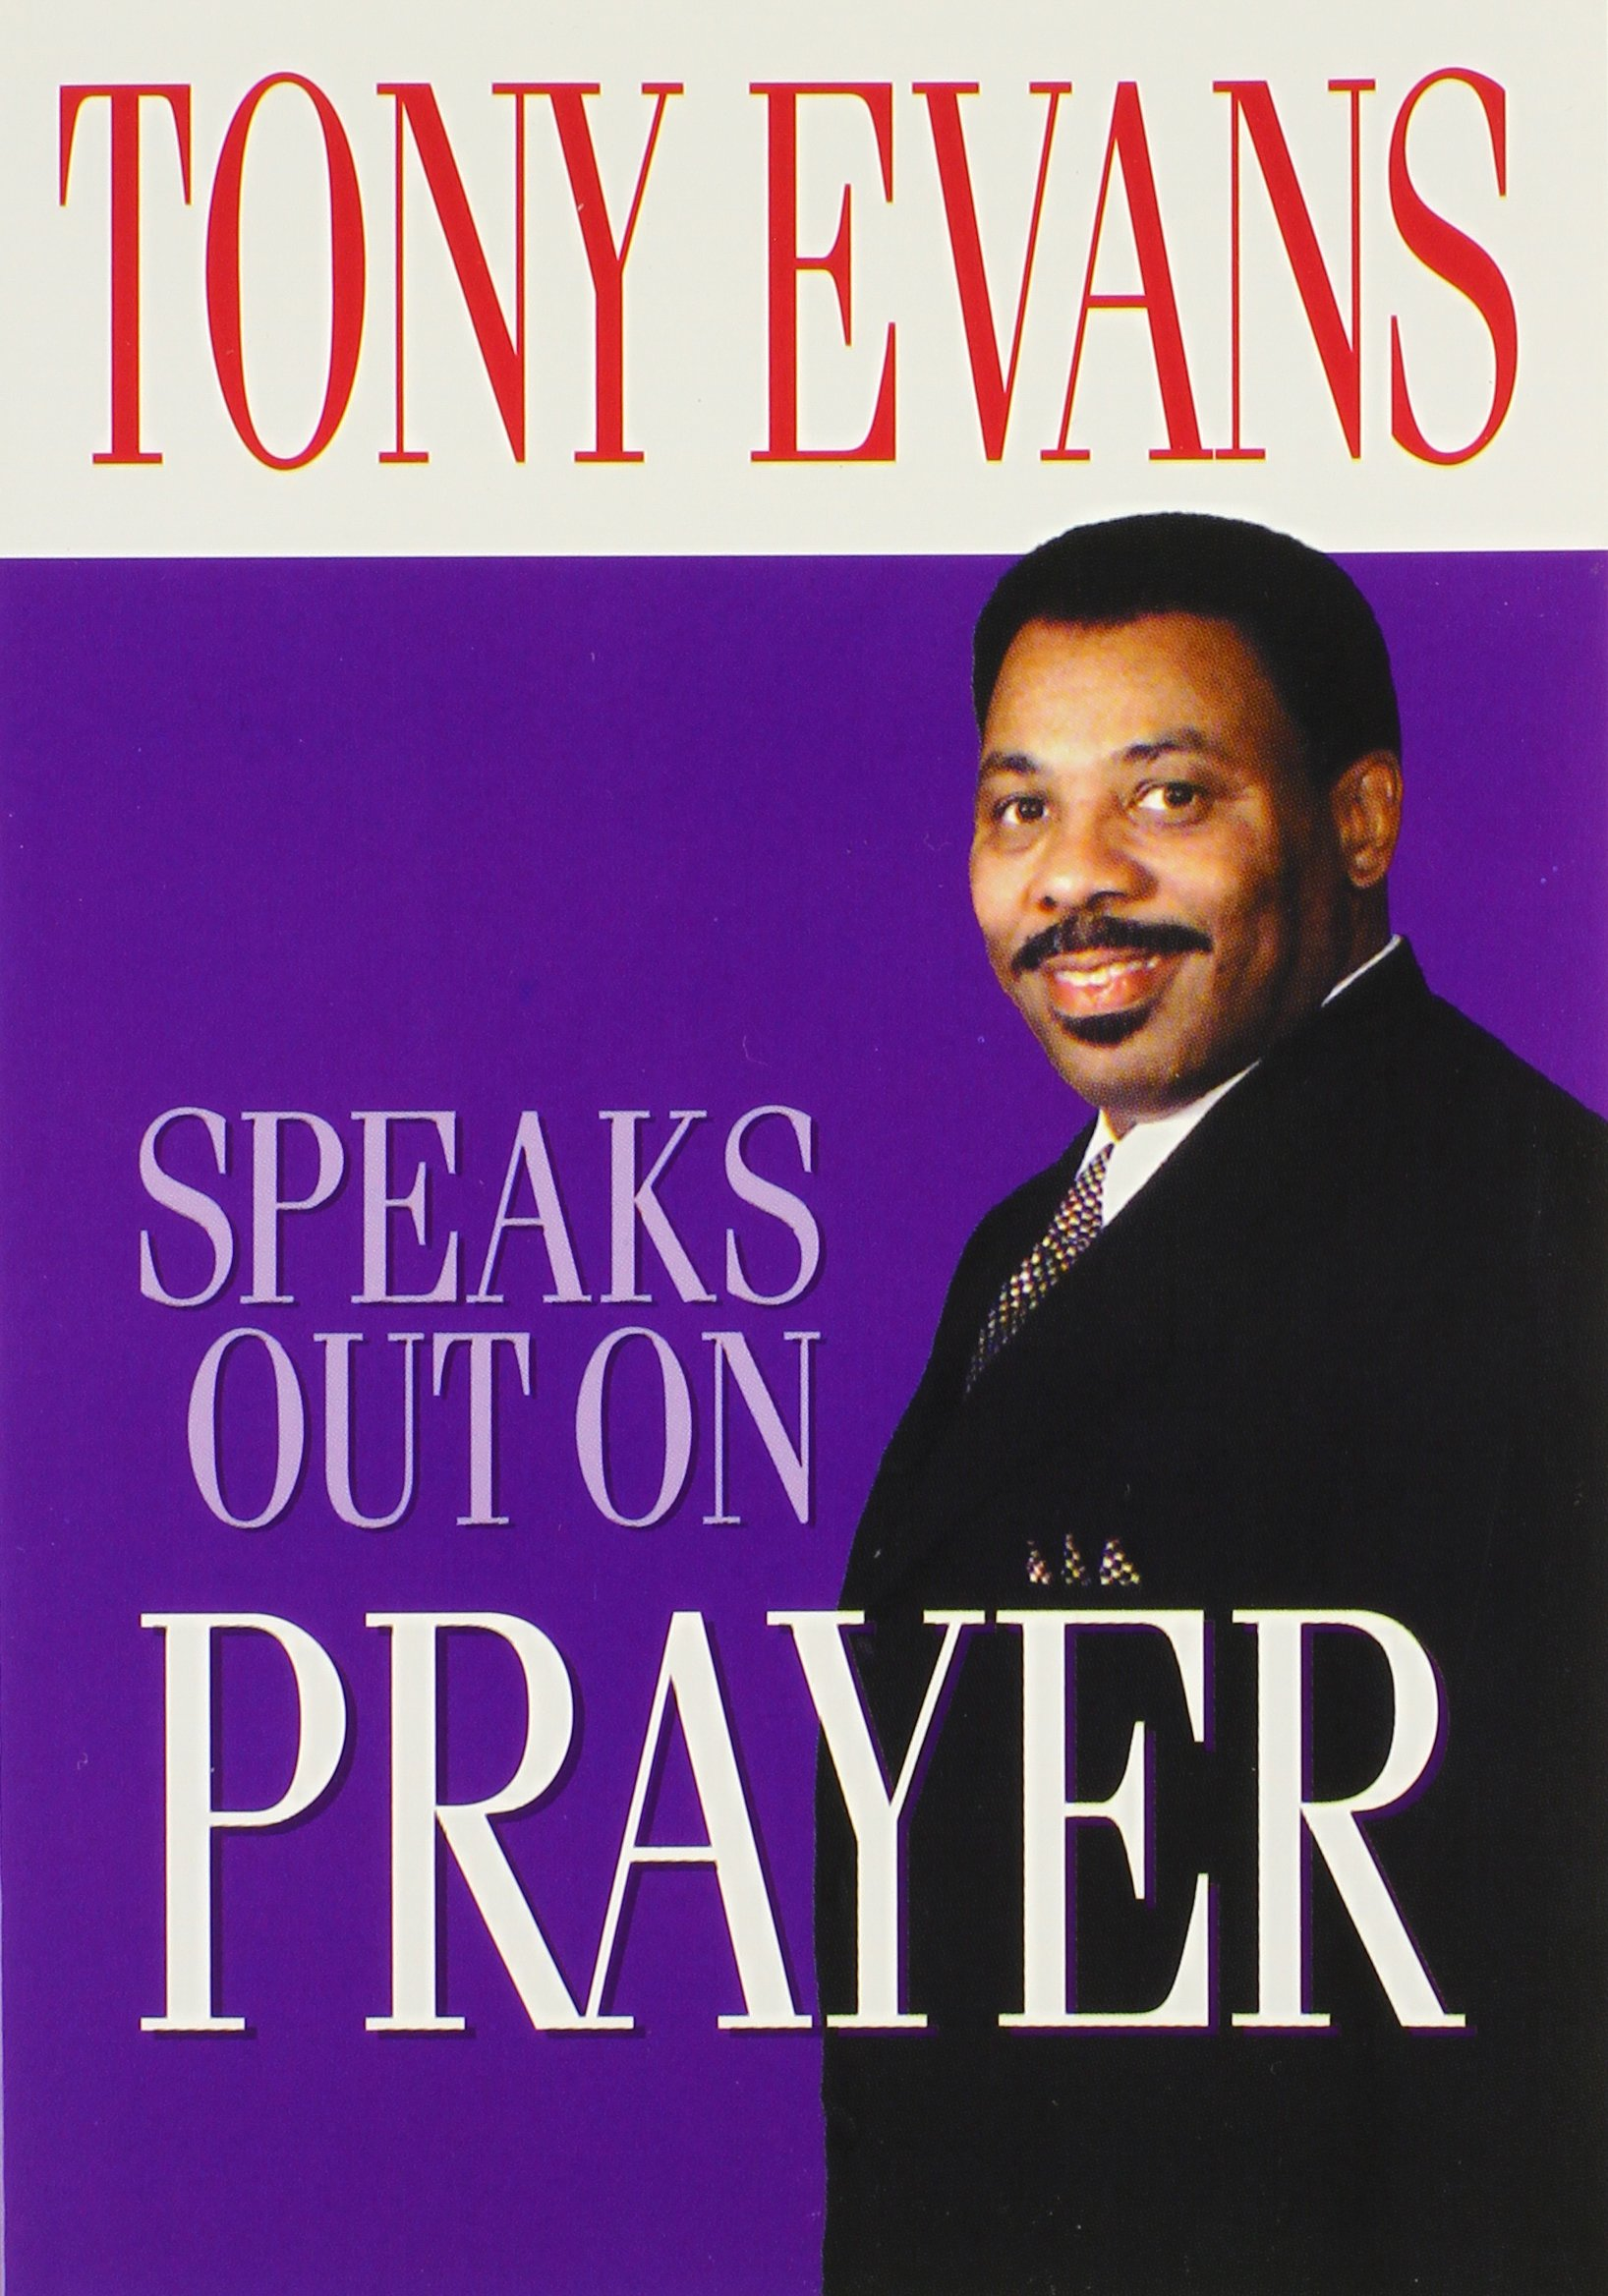 Read Online Tony Evans Speaks Out On Prayer PDF